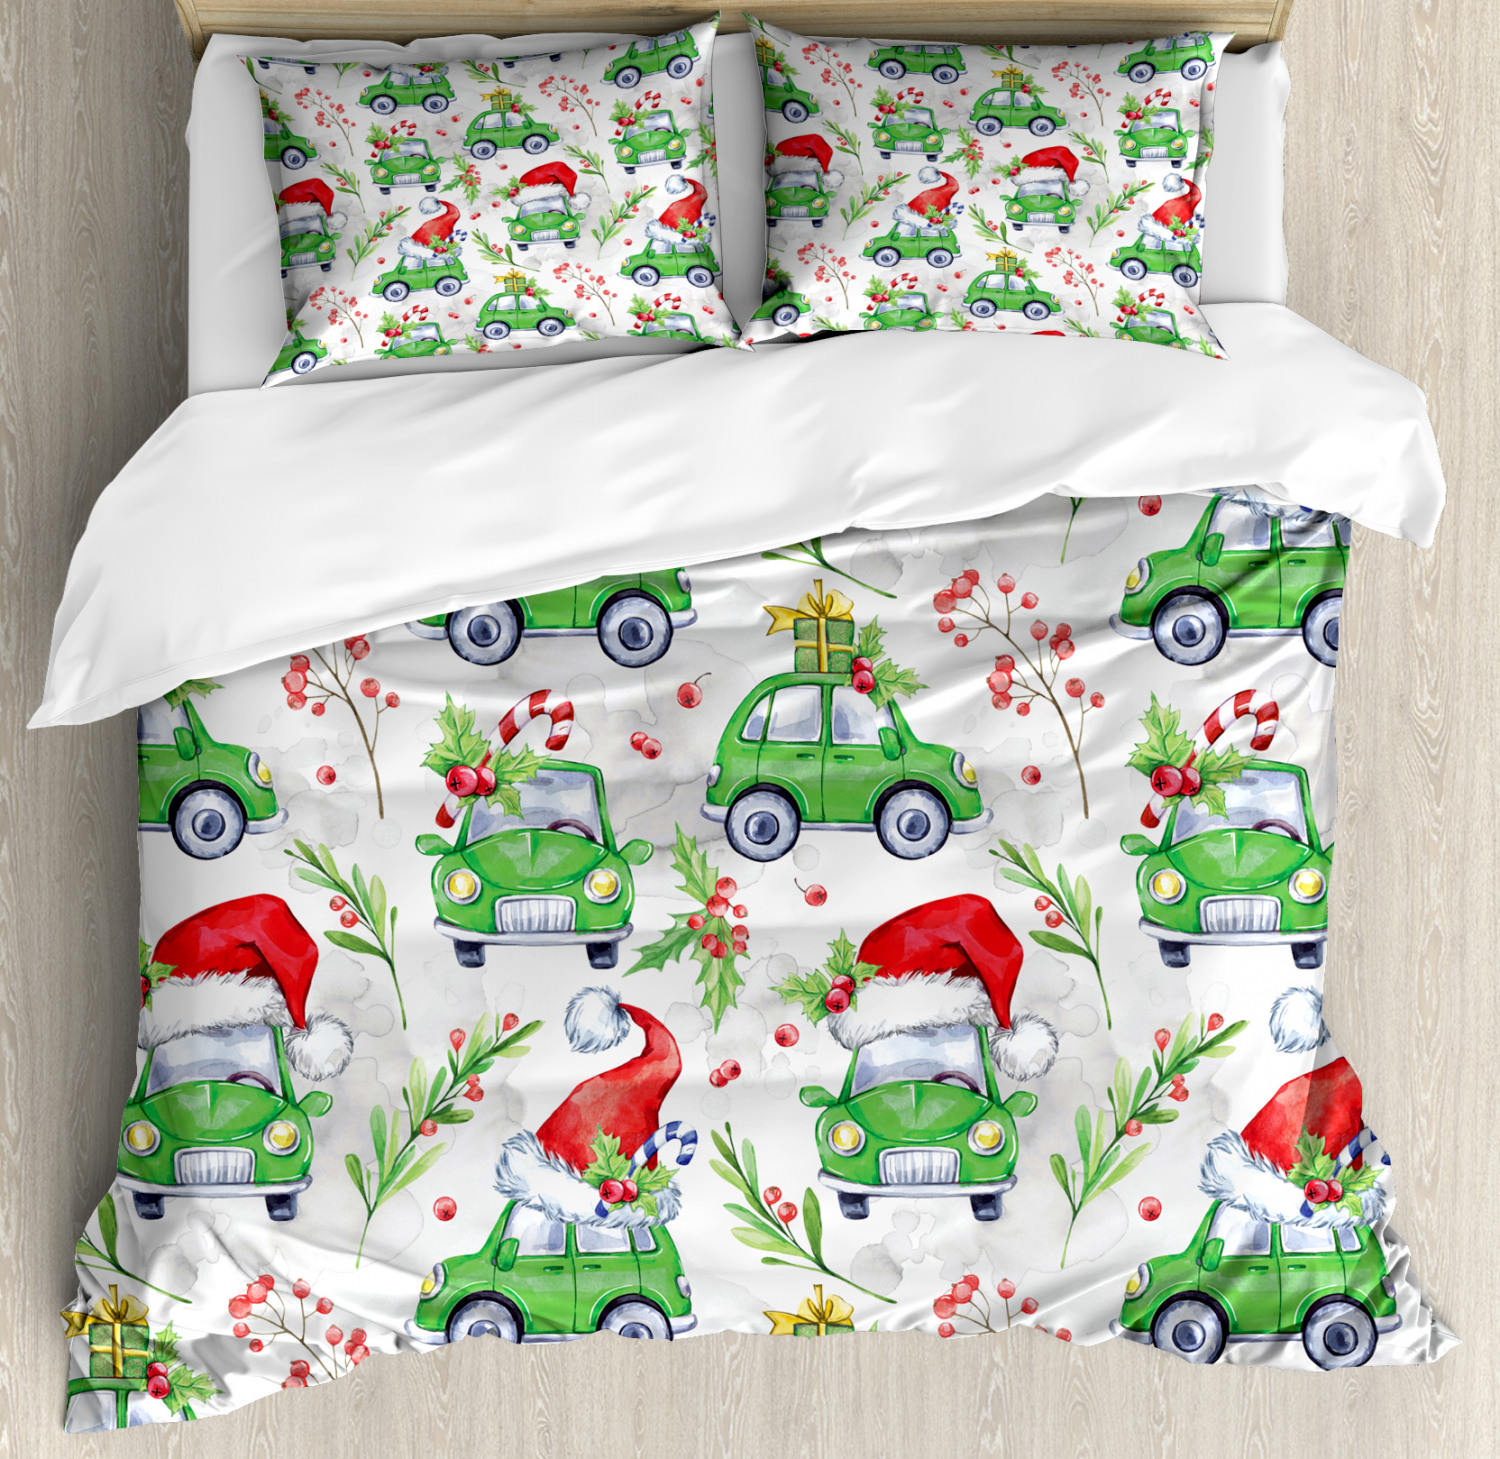 Colorful-Cars-Duvet-Cover-Set-Twin-Queen-King-Sizes-with-Pillow-Shams-Bedding miniature 58